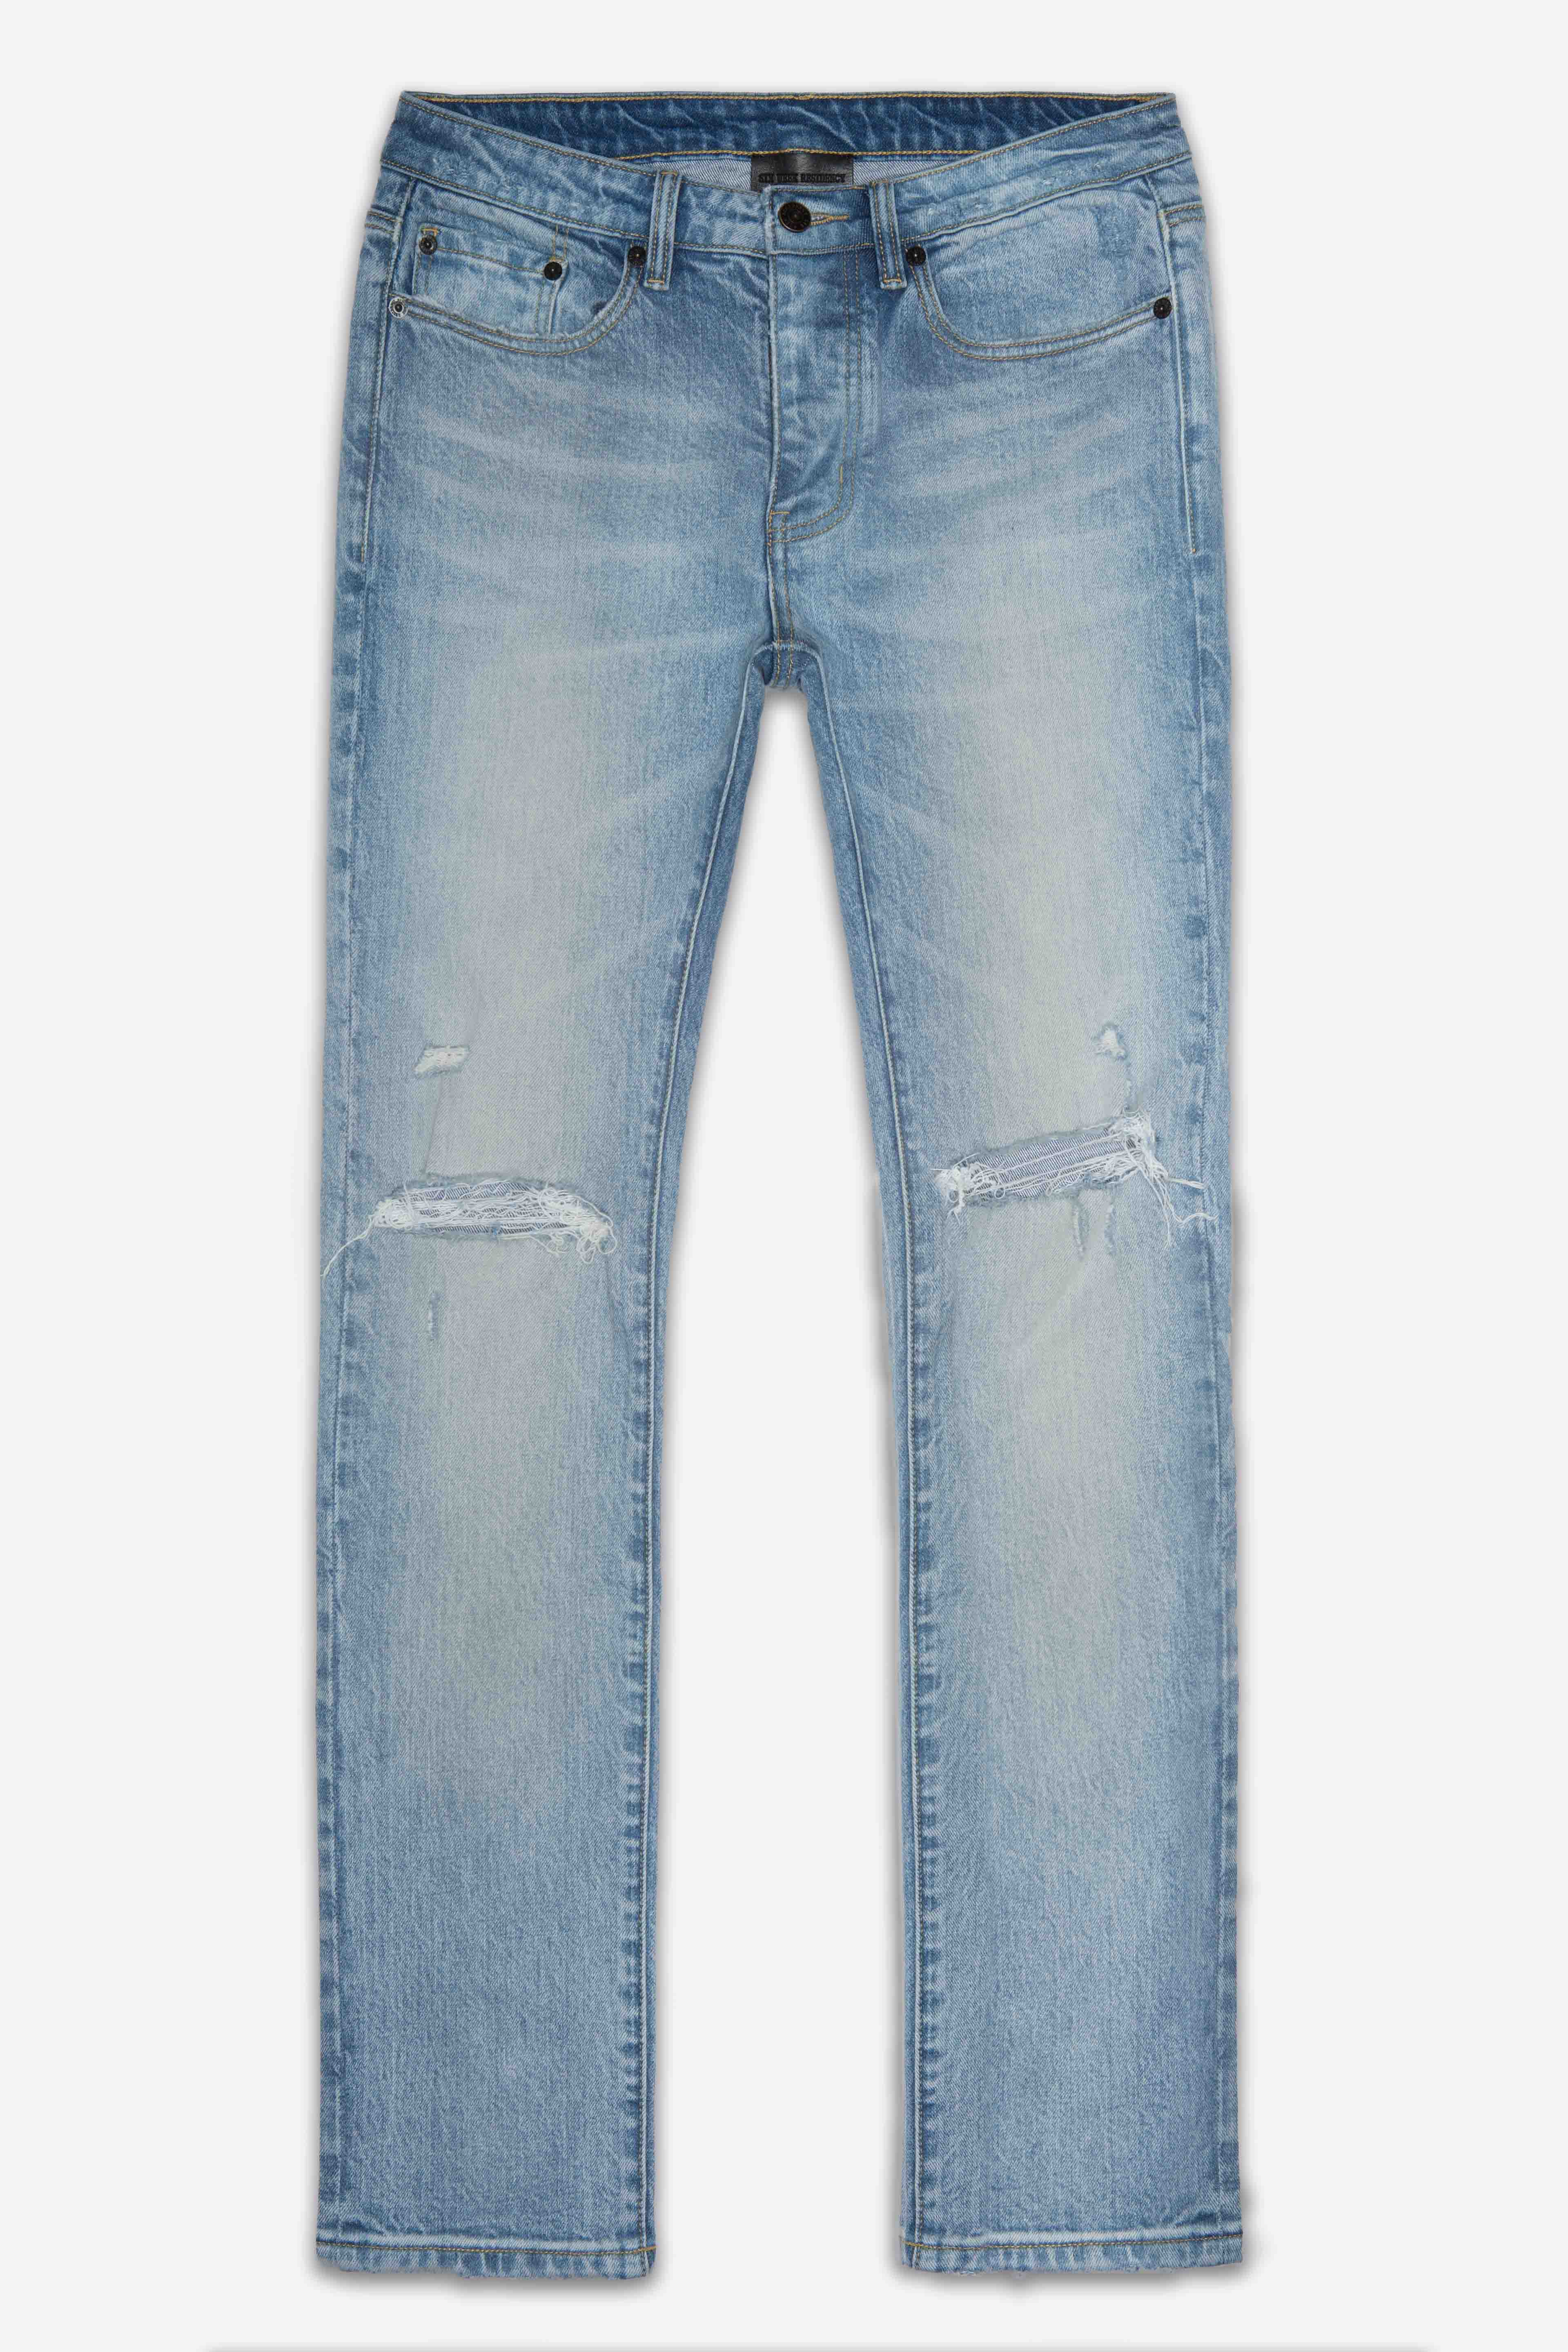 Six Week Residency Jeans